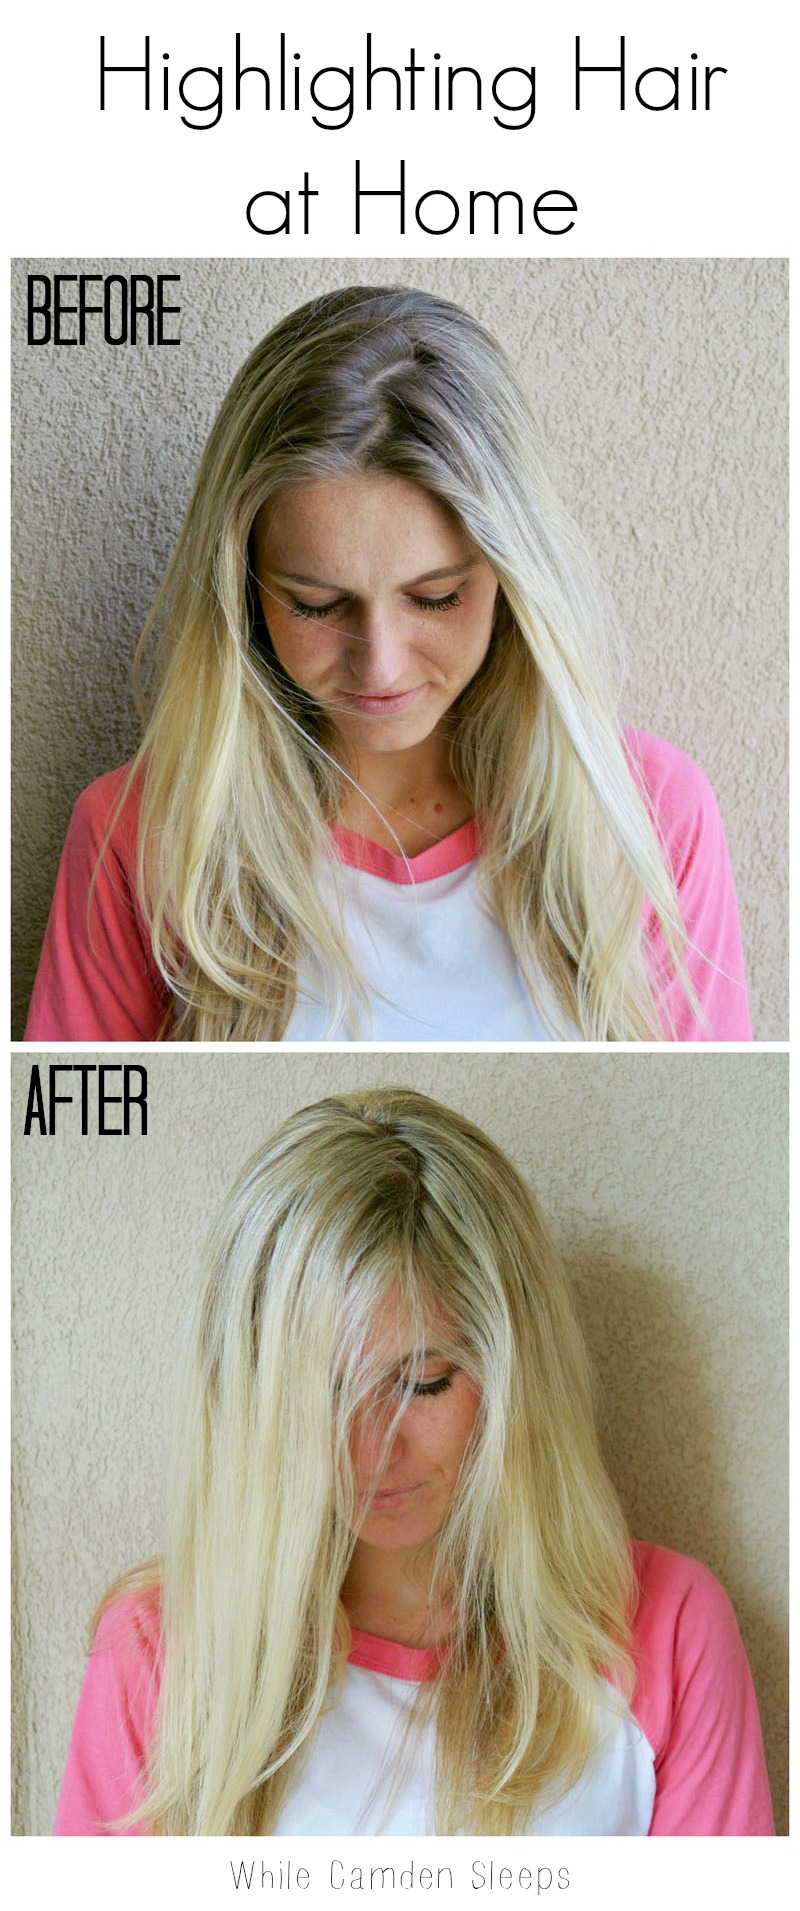 Tutorial on how to highlight hair at home using stuff from Sally's or Amazon.  There's a ton of before and after pictures which helps.  I use the same stuff and love it.